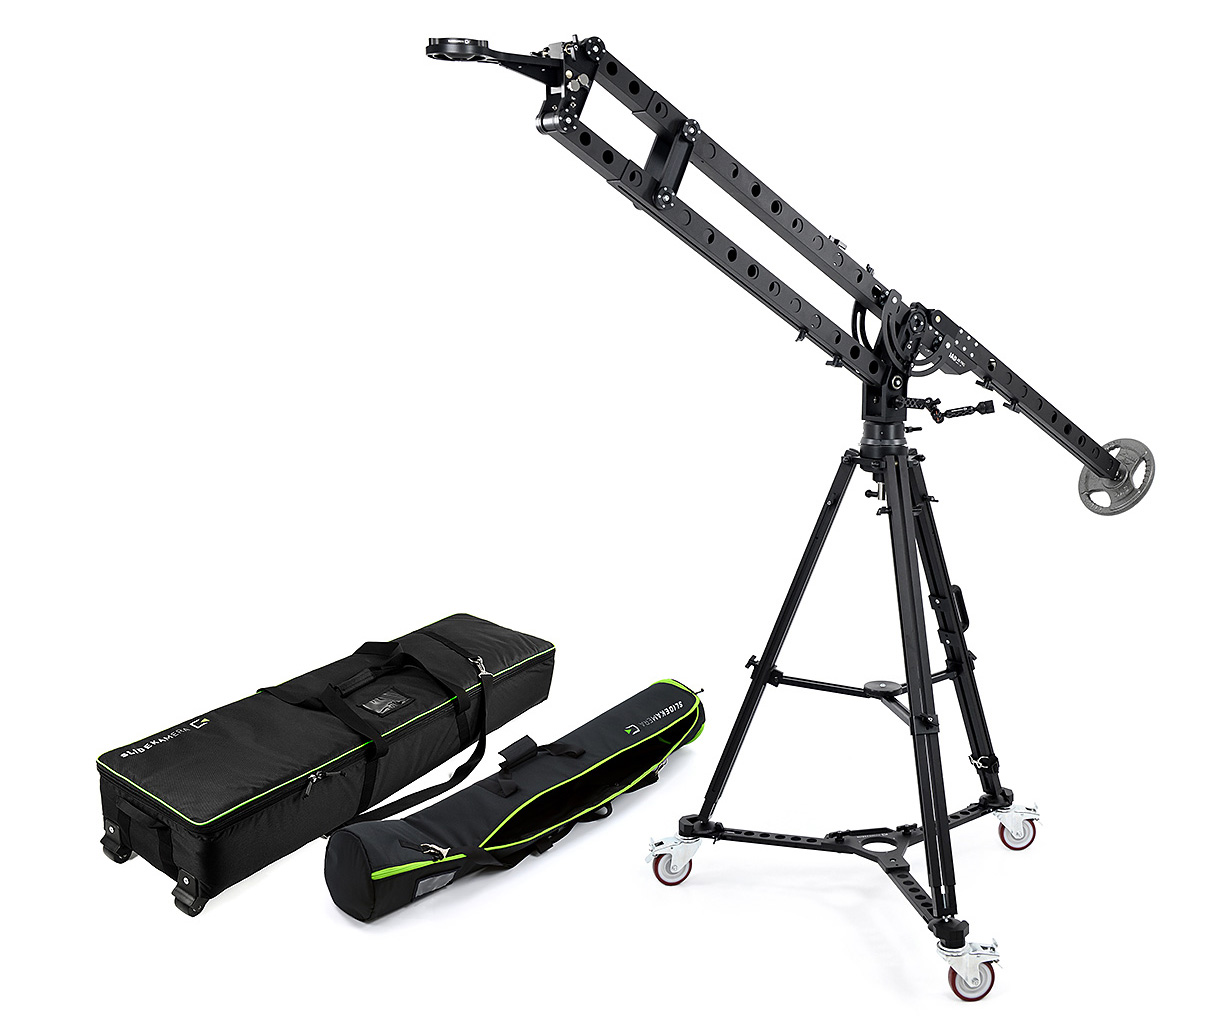 set_roadjib_giant_dolly_02dwa.jpg?149485